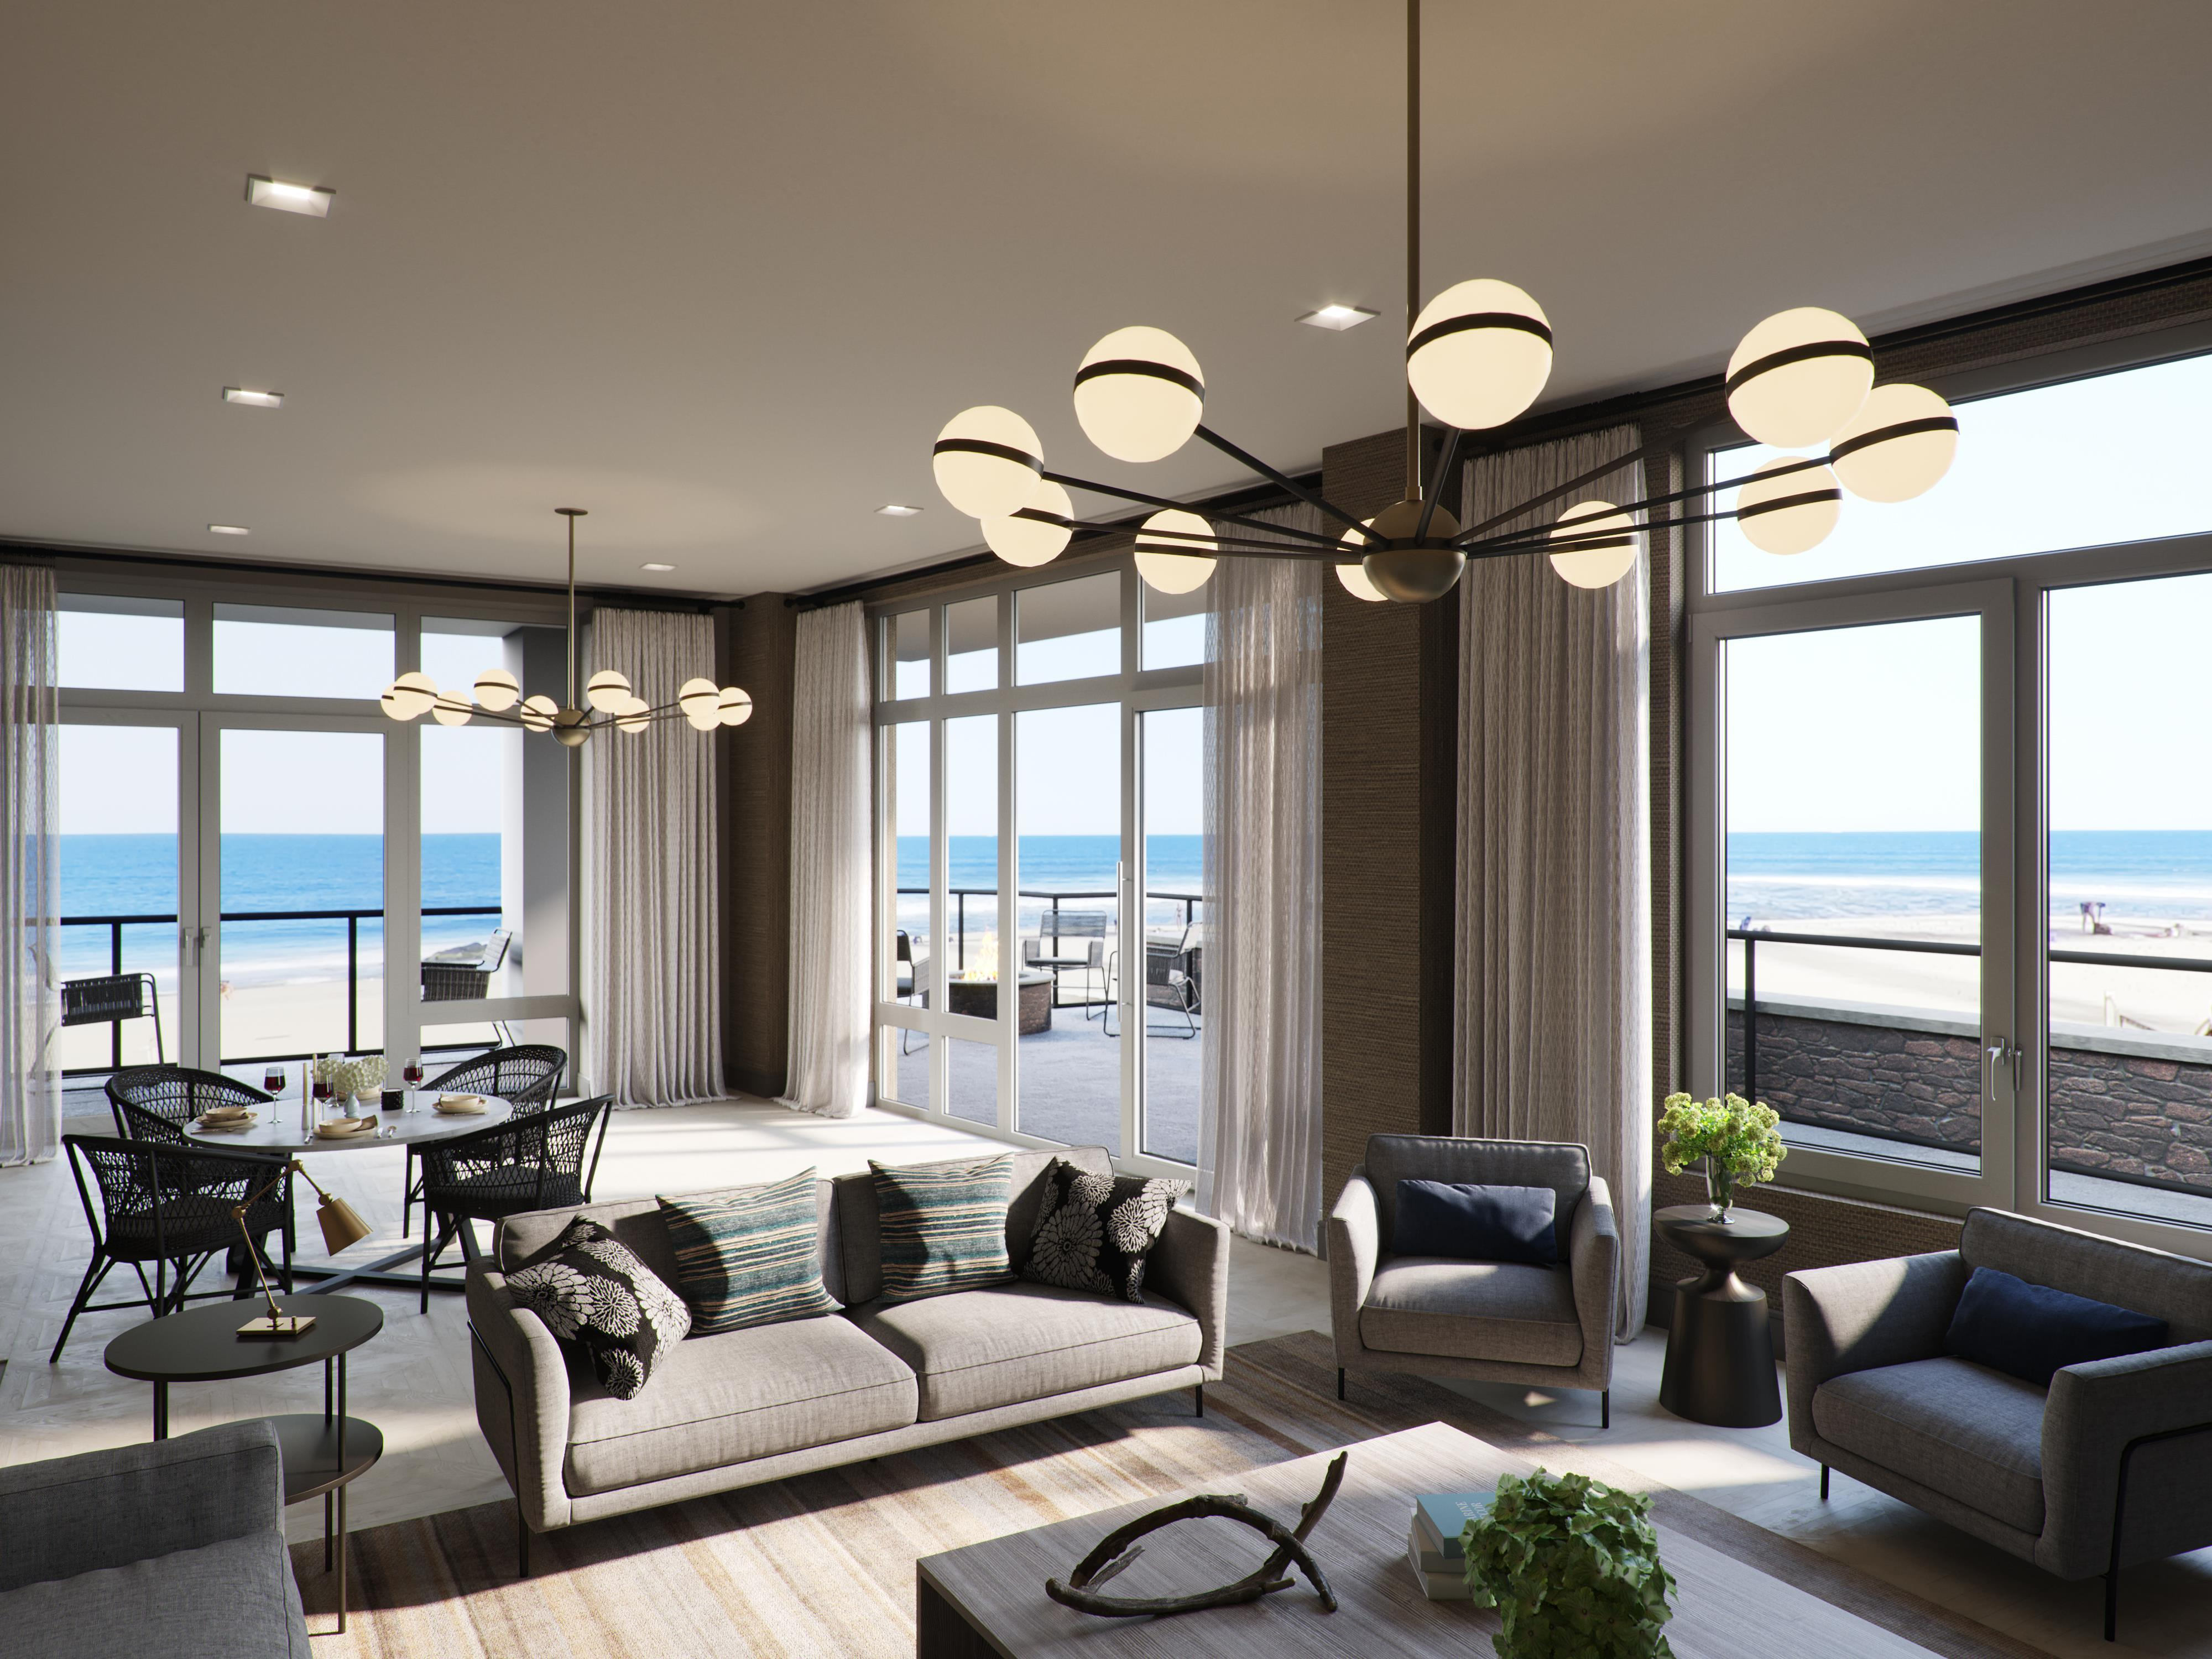 Living Area featured in the 8 Line By Mark Built Homes in Monmouth County, NJ